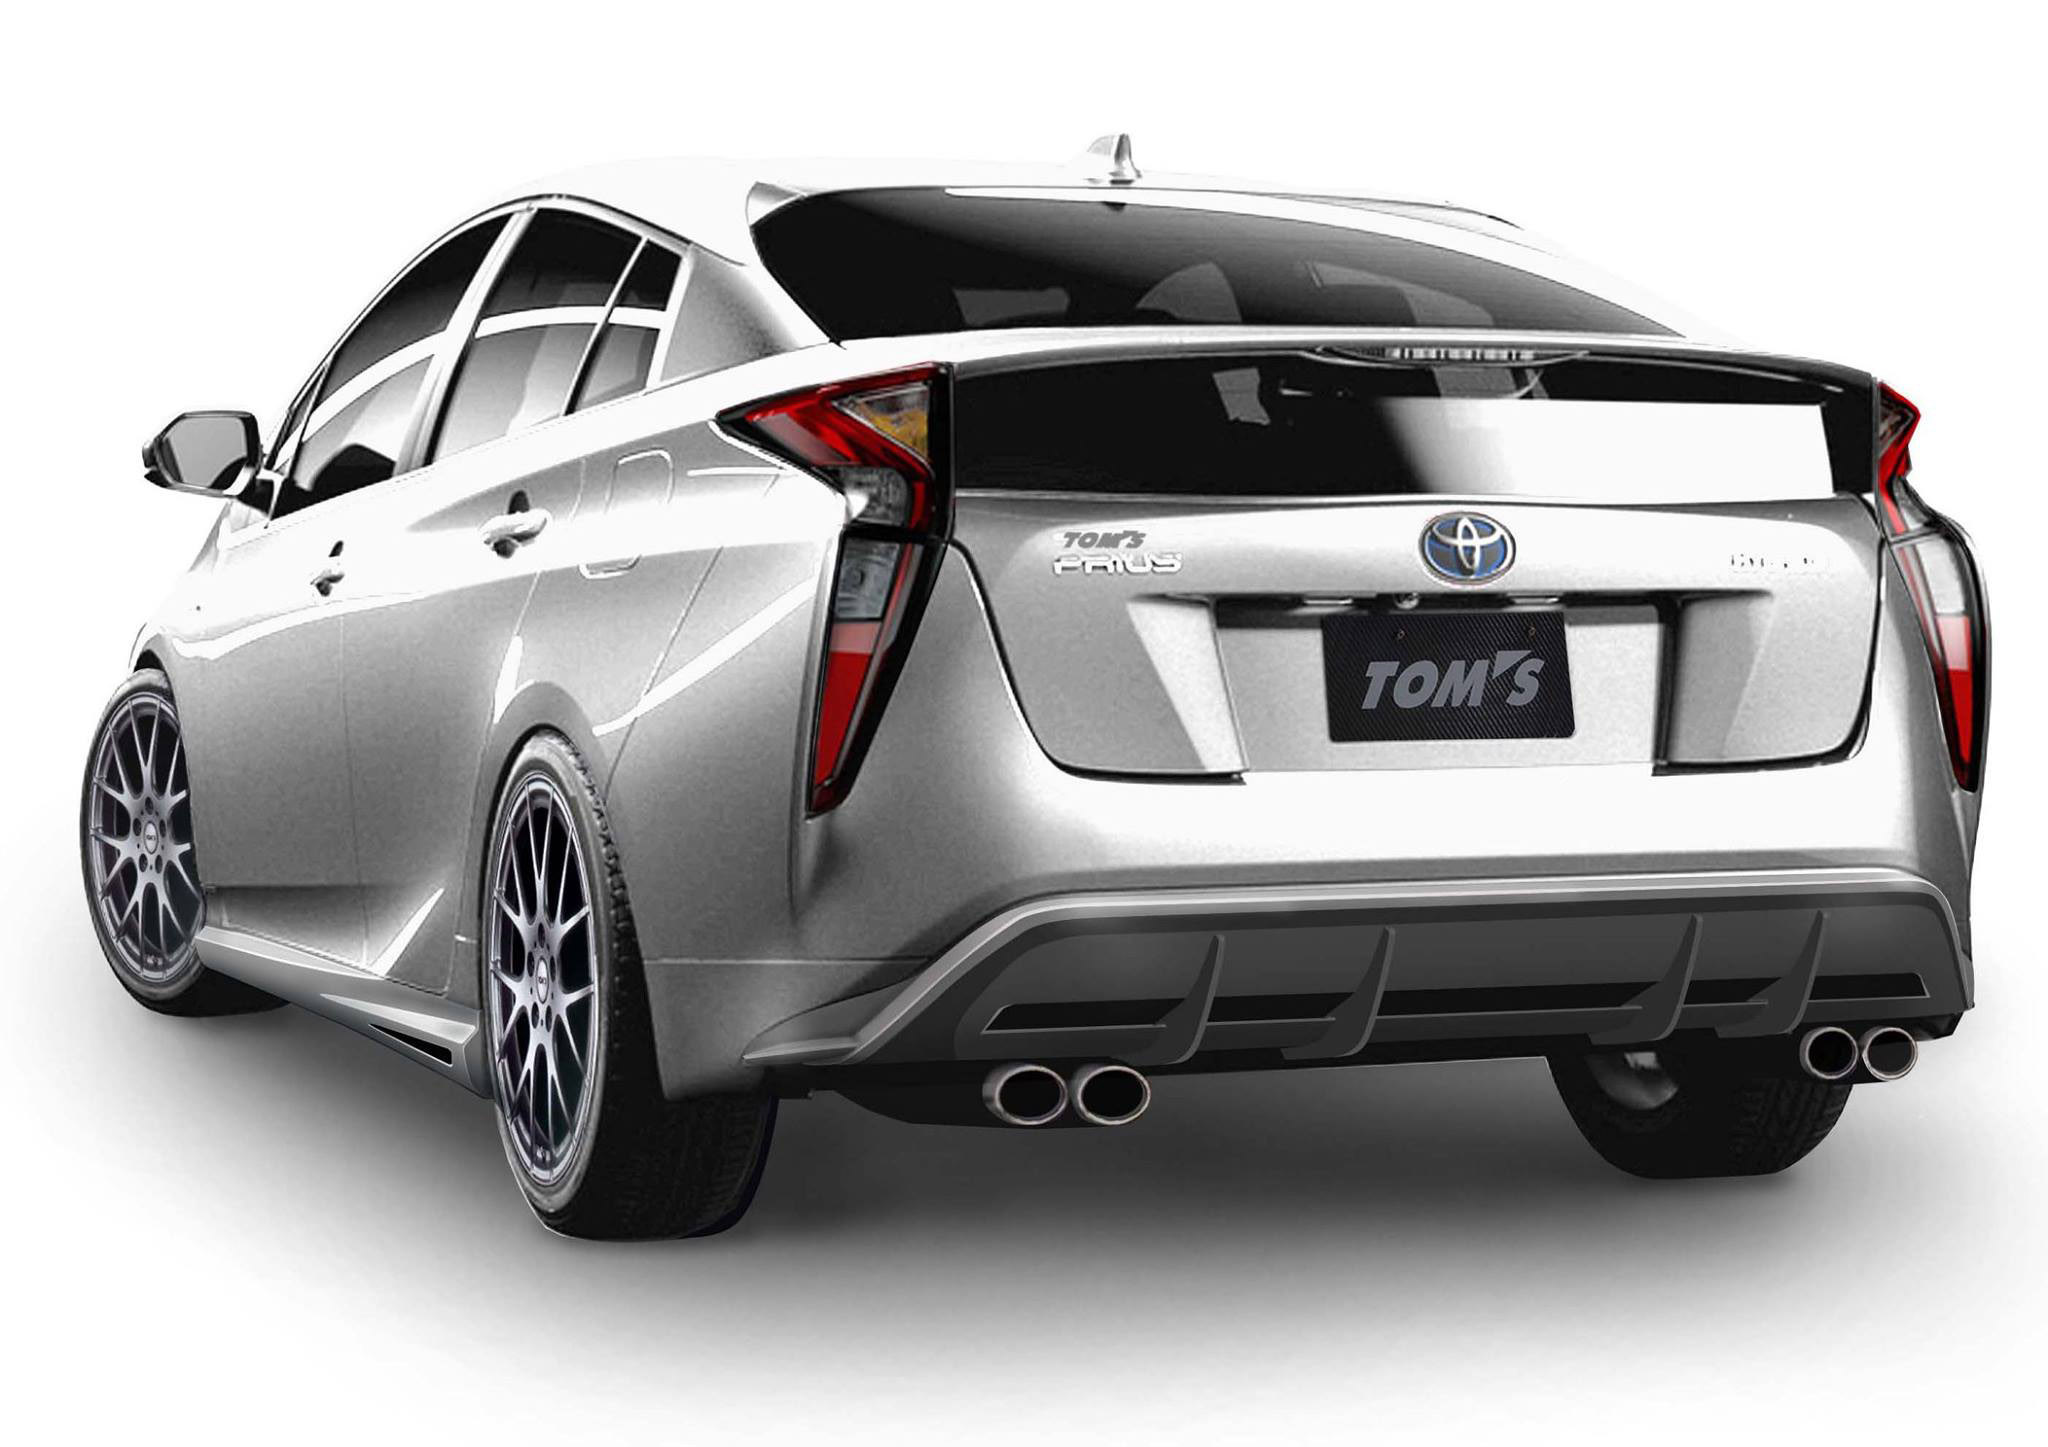 tom s racing with aero kit for toyota prius. Black Bedroom Furniture Sets. Home Design Ideas